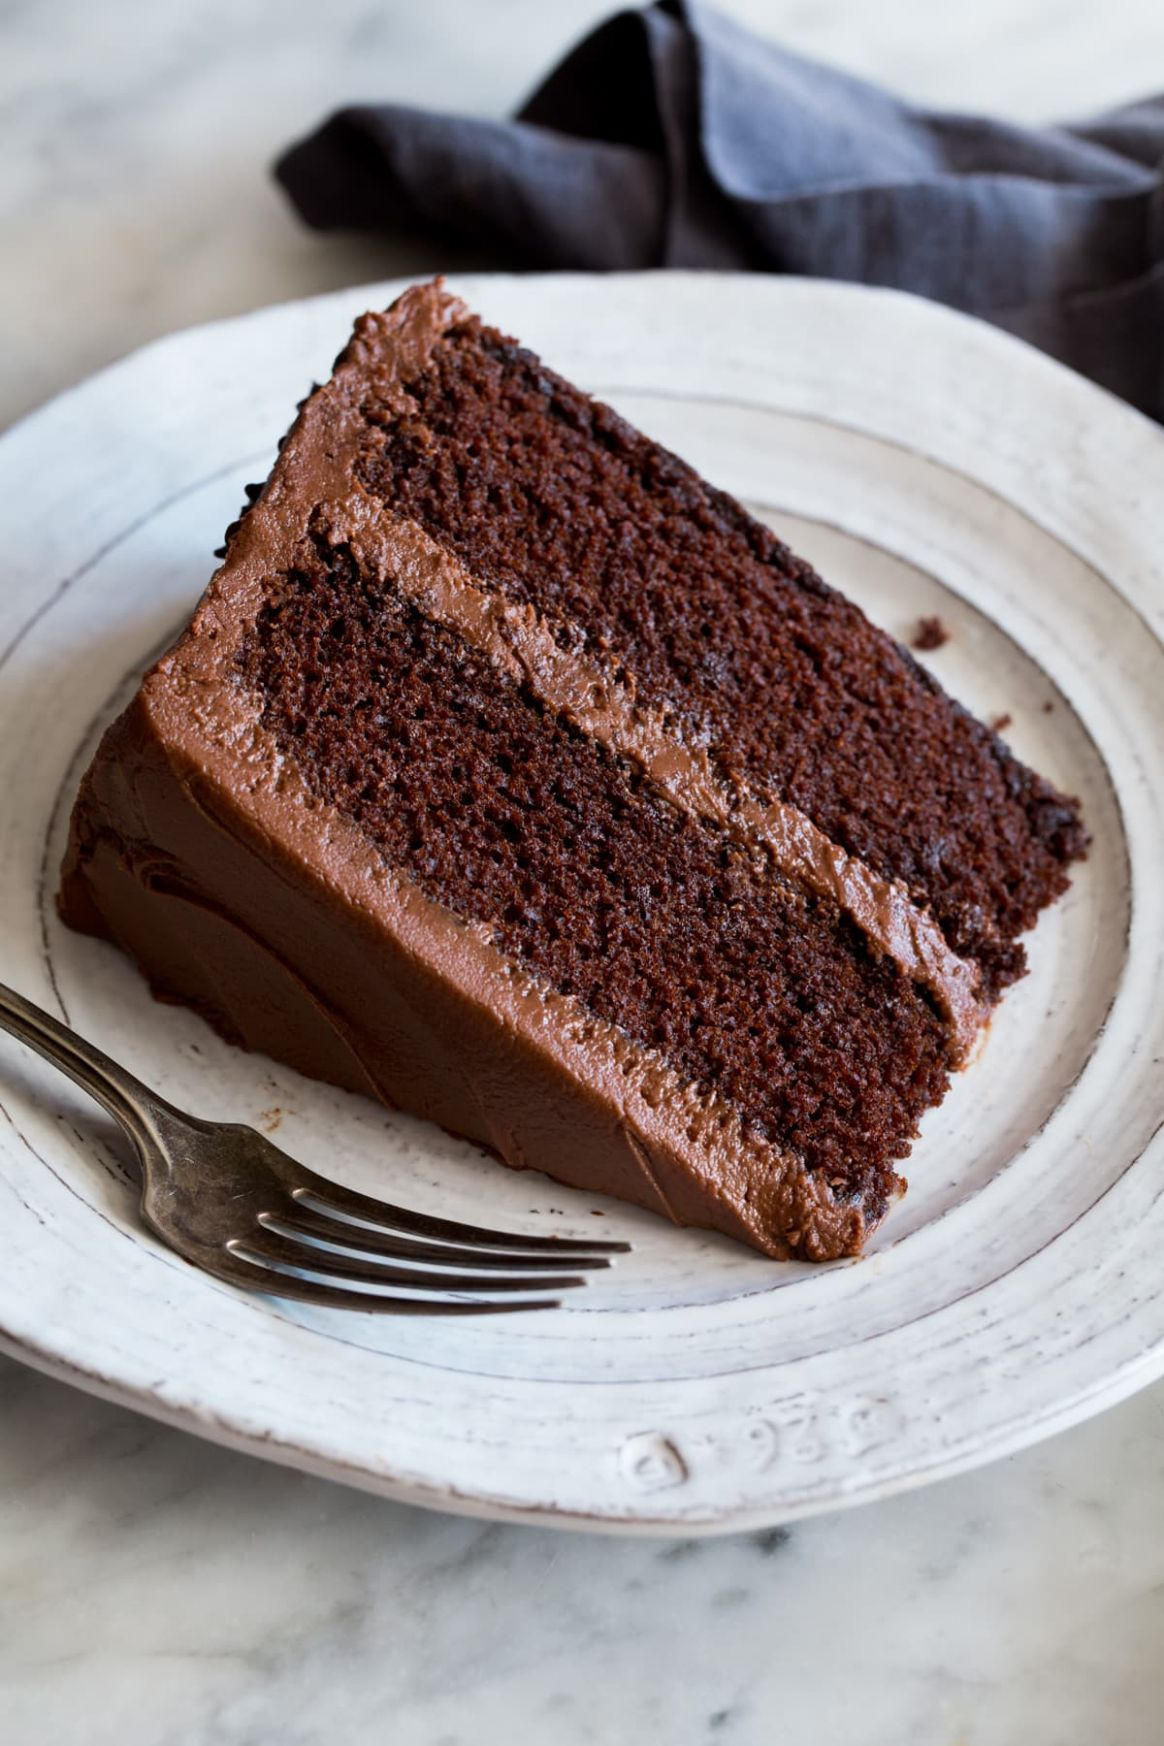 Chocolate Cake with Chocolate Buttercream Frosting - Recipes Chocolate Torte